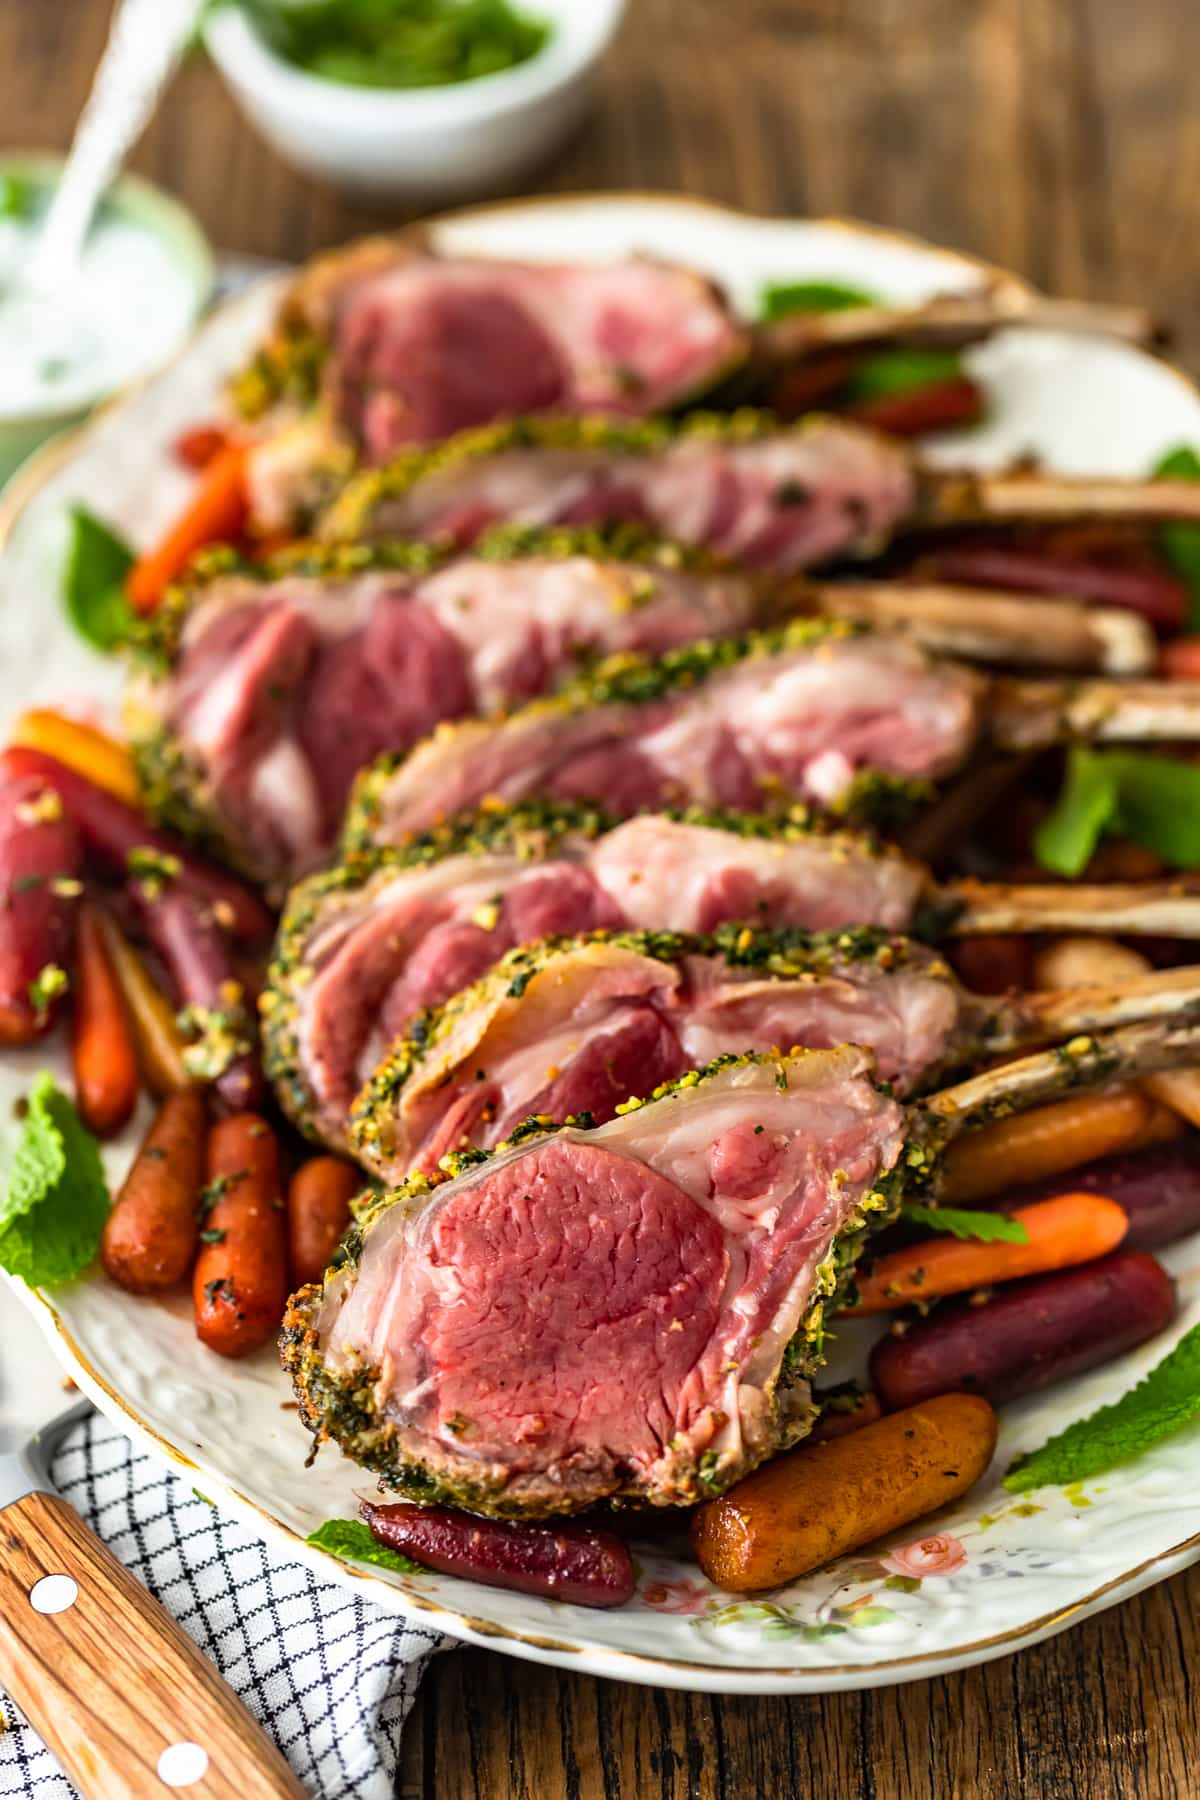 serving platter of roast lamb and carrots